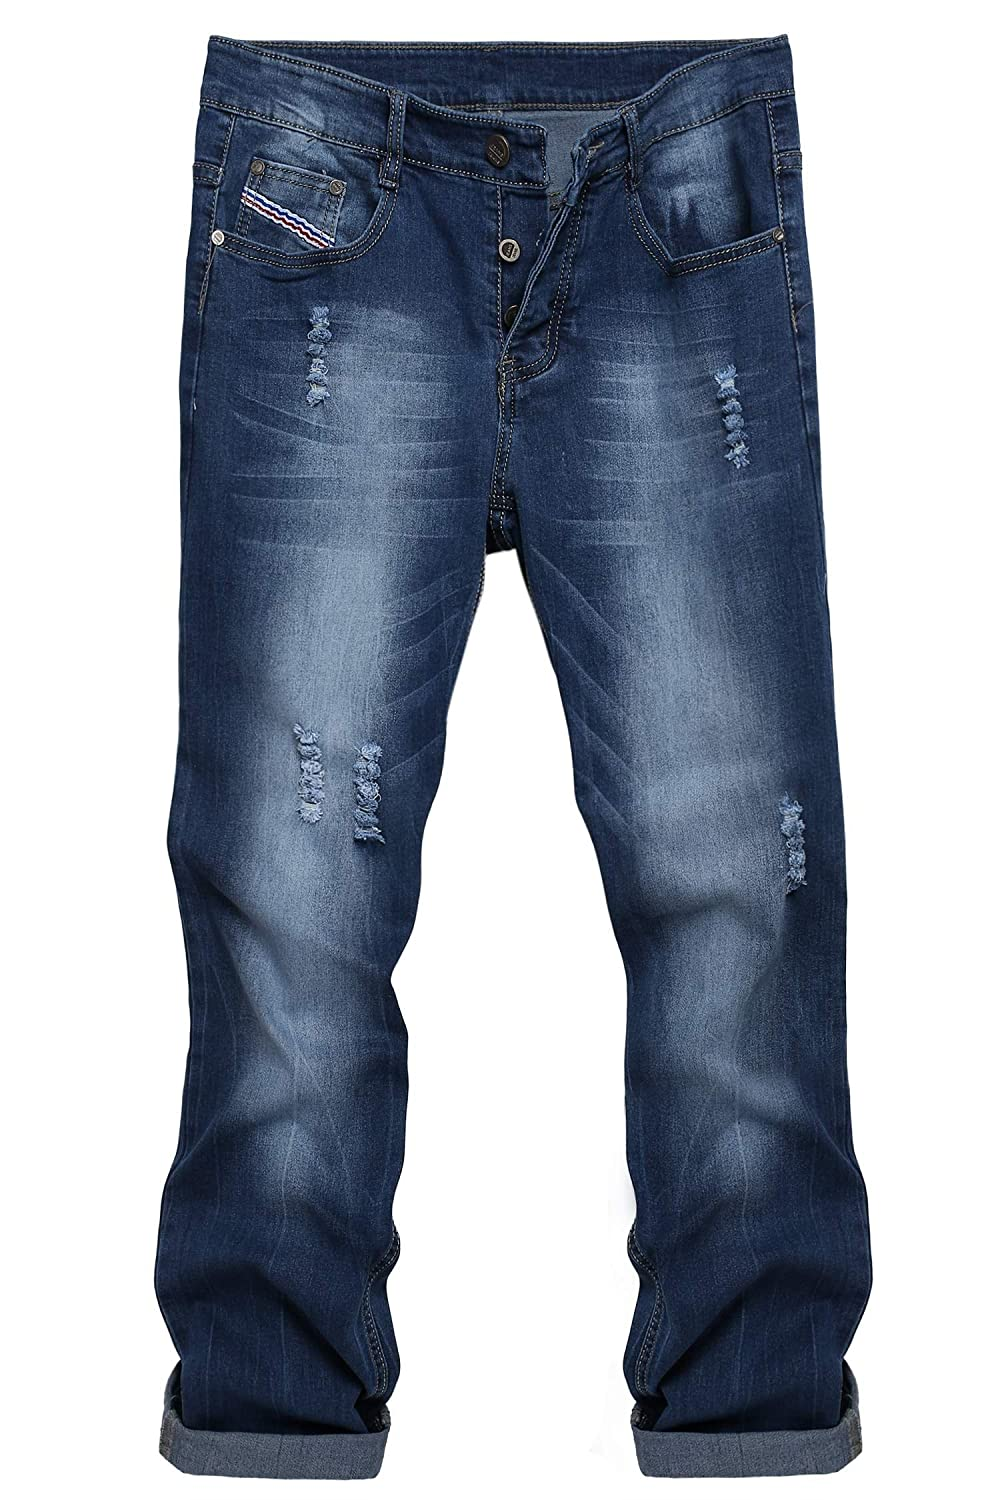 Coofandy Men's Casual Denim Jeans Frayed Slim Ripped Pants